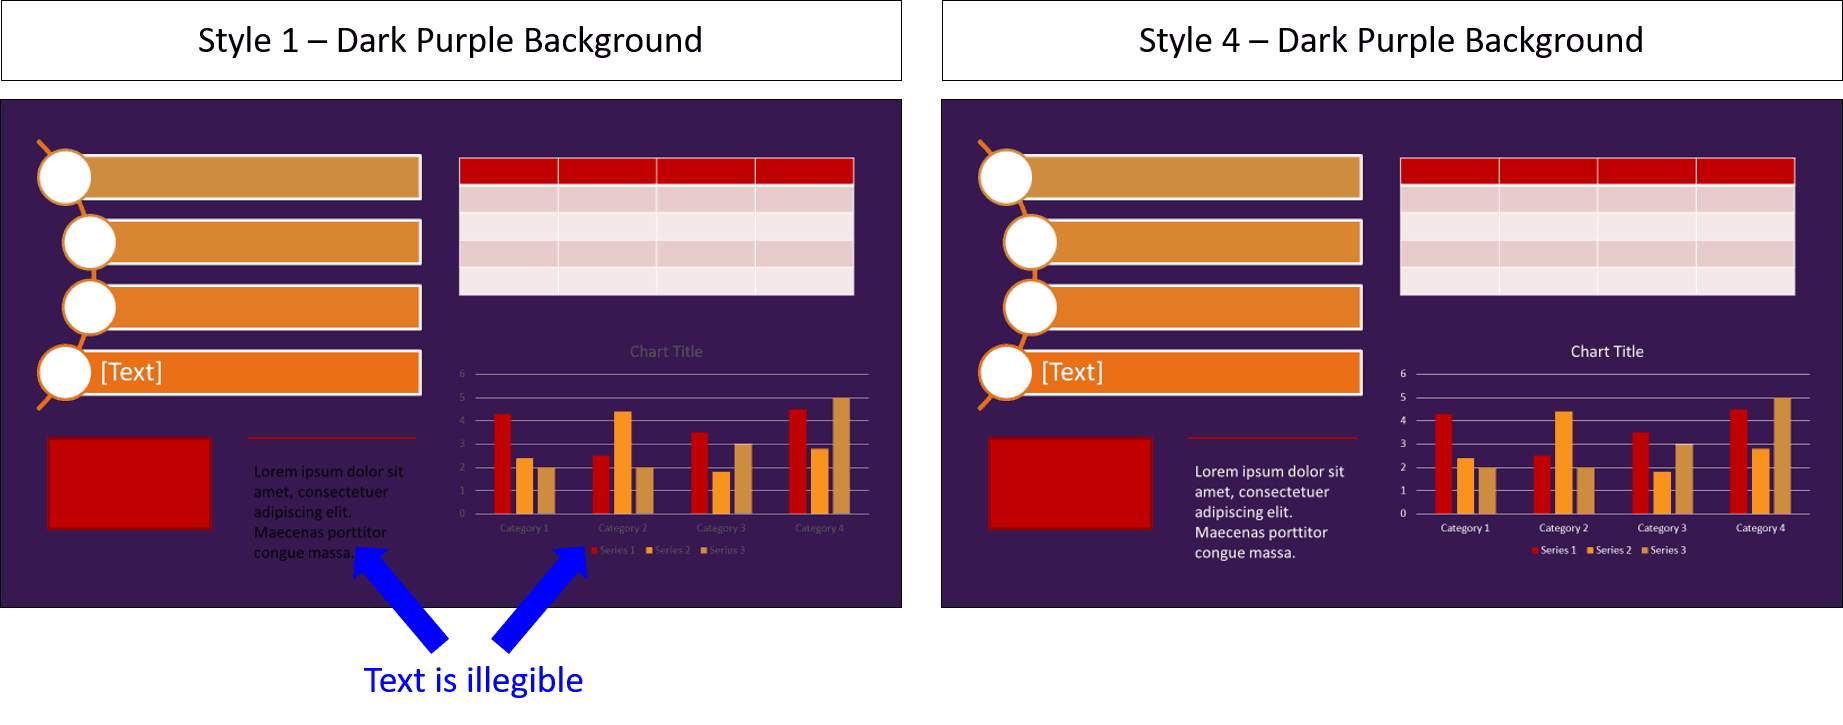 Comparison of illegible text based on the styles you selected for your theme